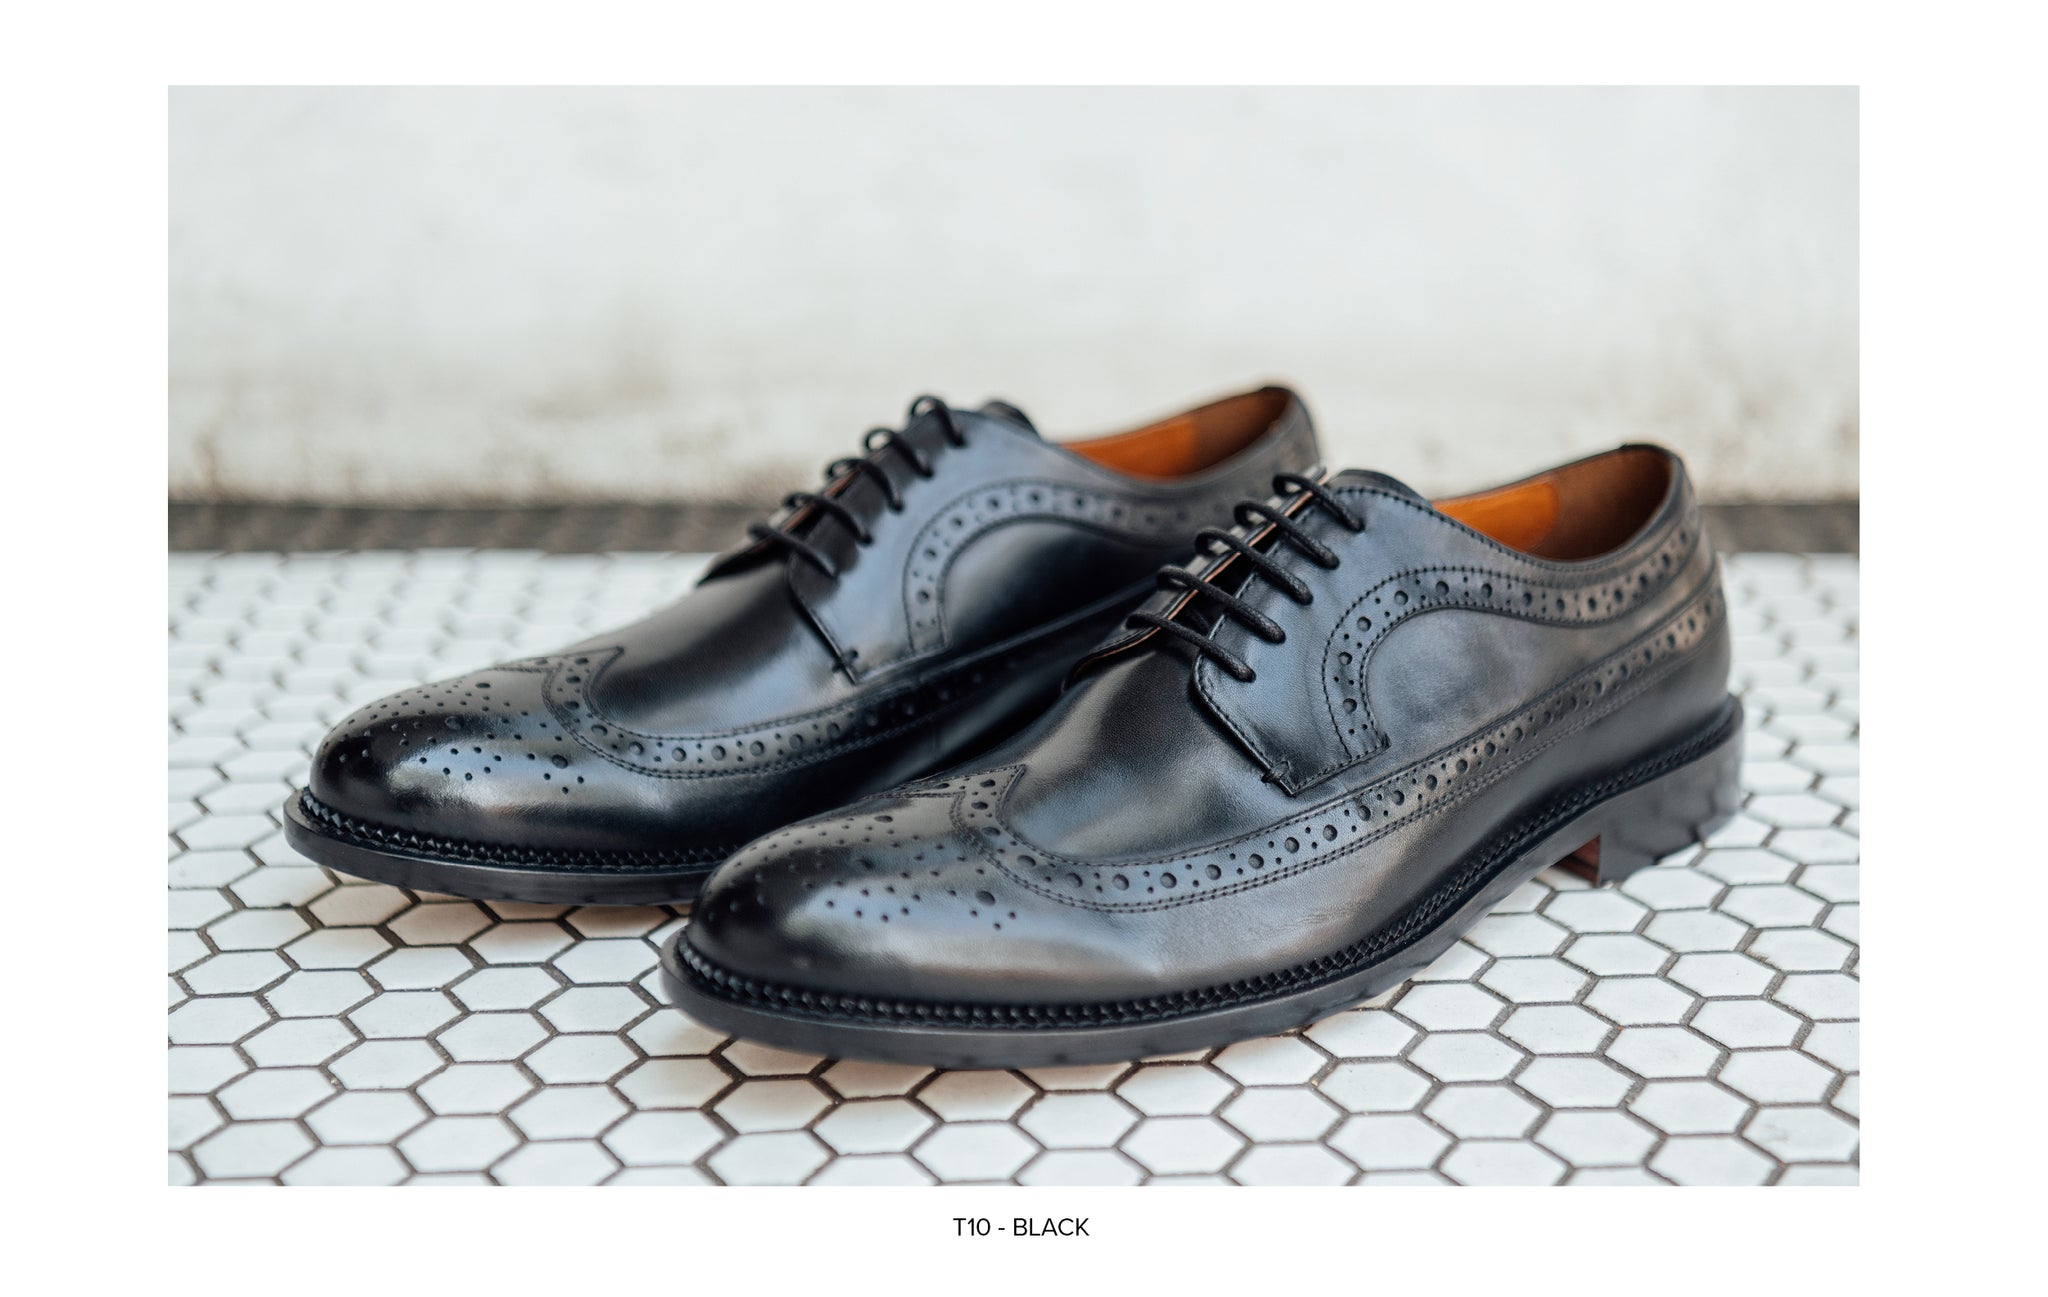 T10 Scott Lace-Up in Black by Blake McKay